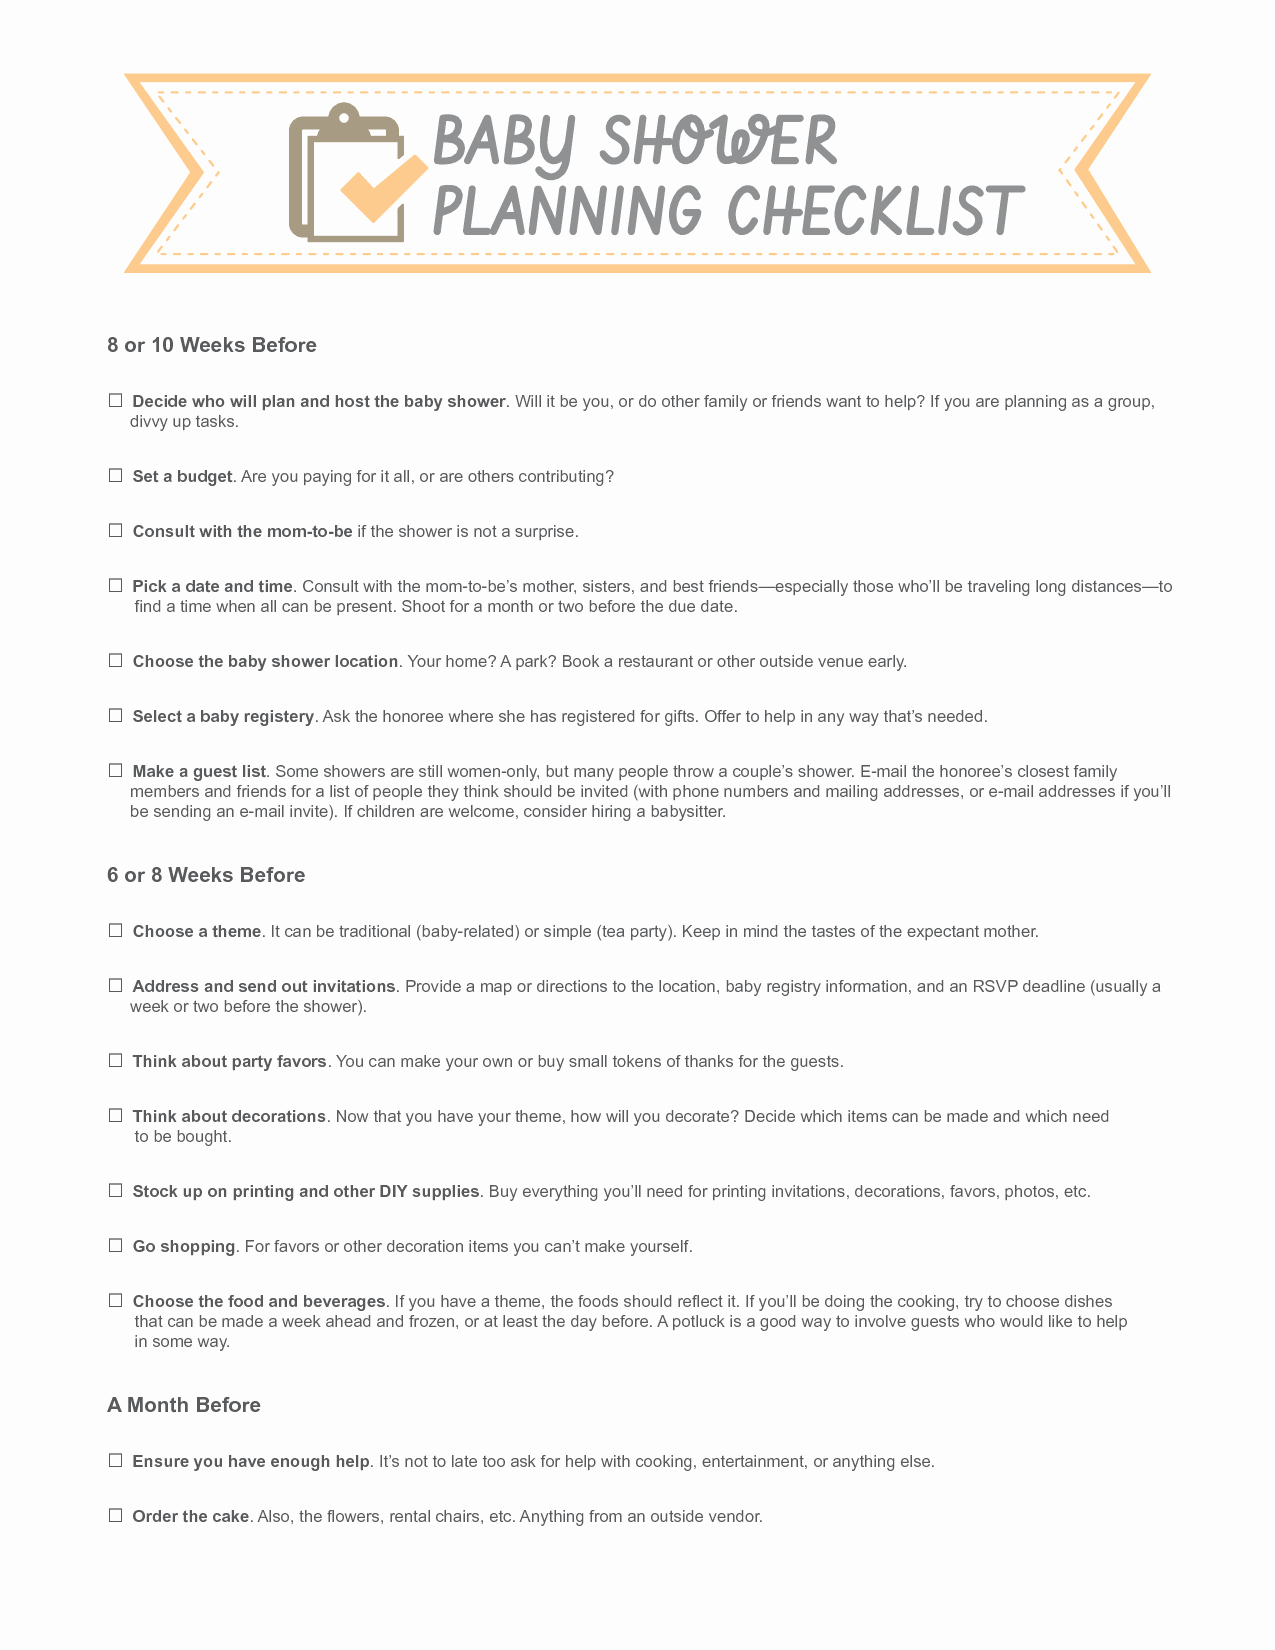 Baby Shower Planning Checklist Elegant Template for Bowtie for A Baby Shower